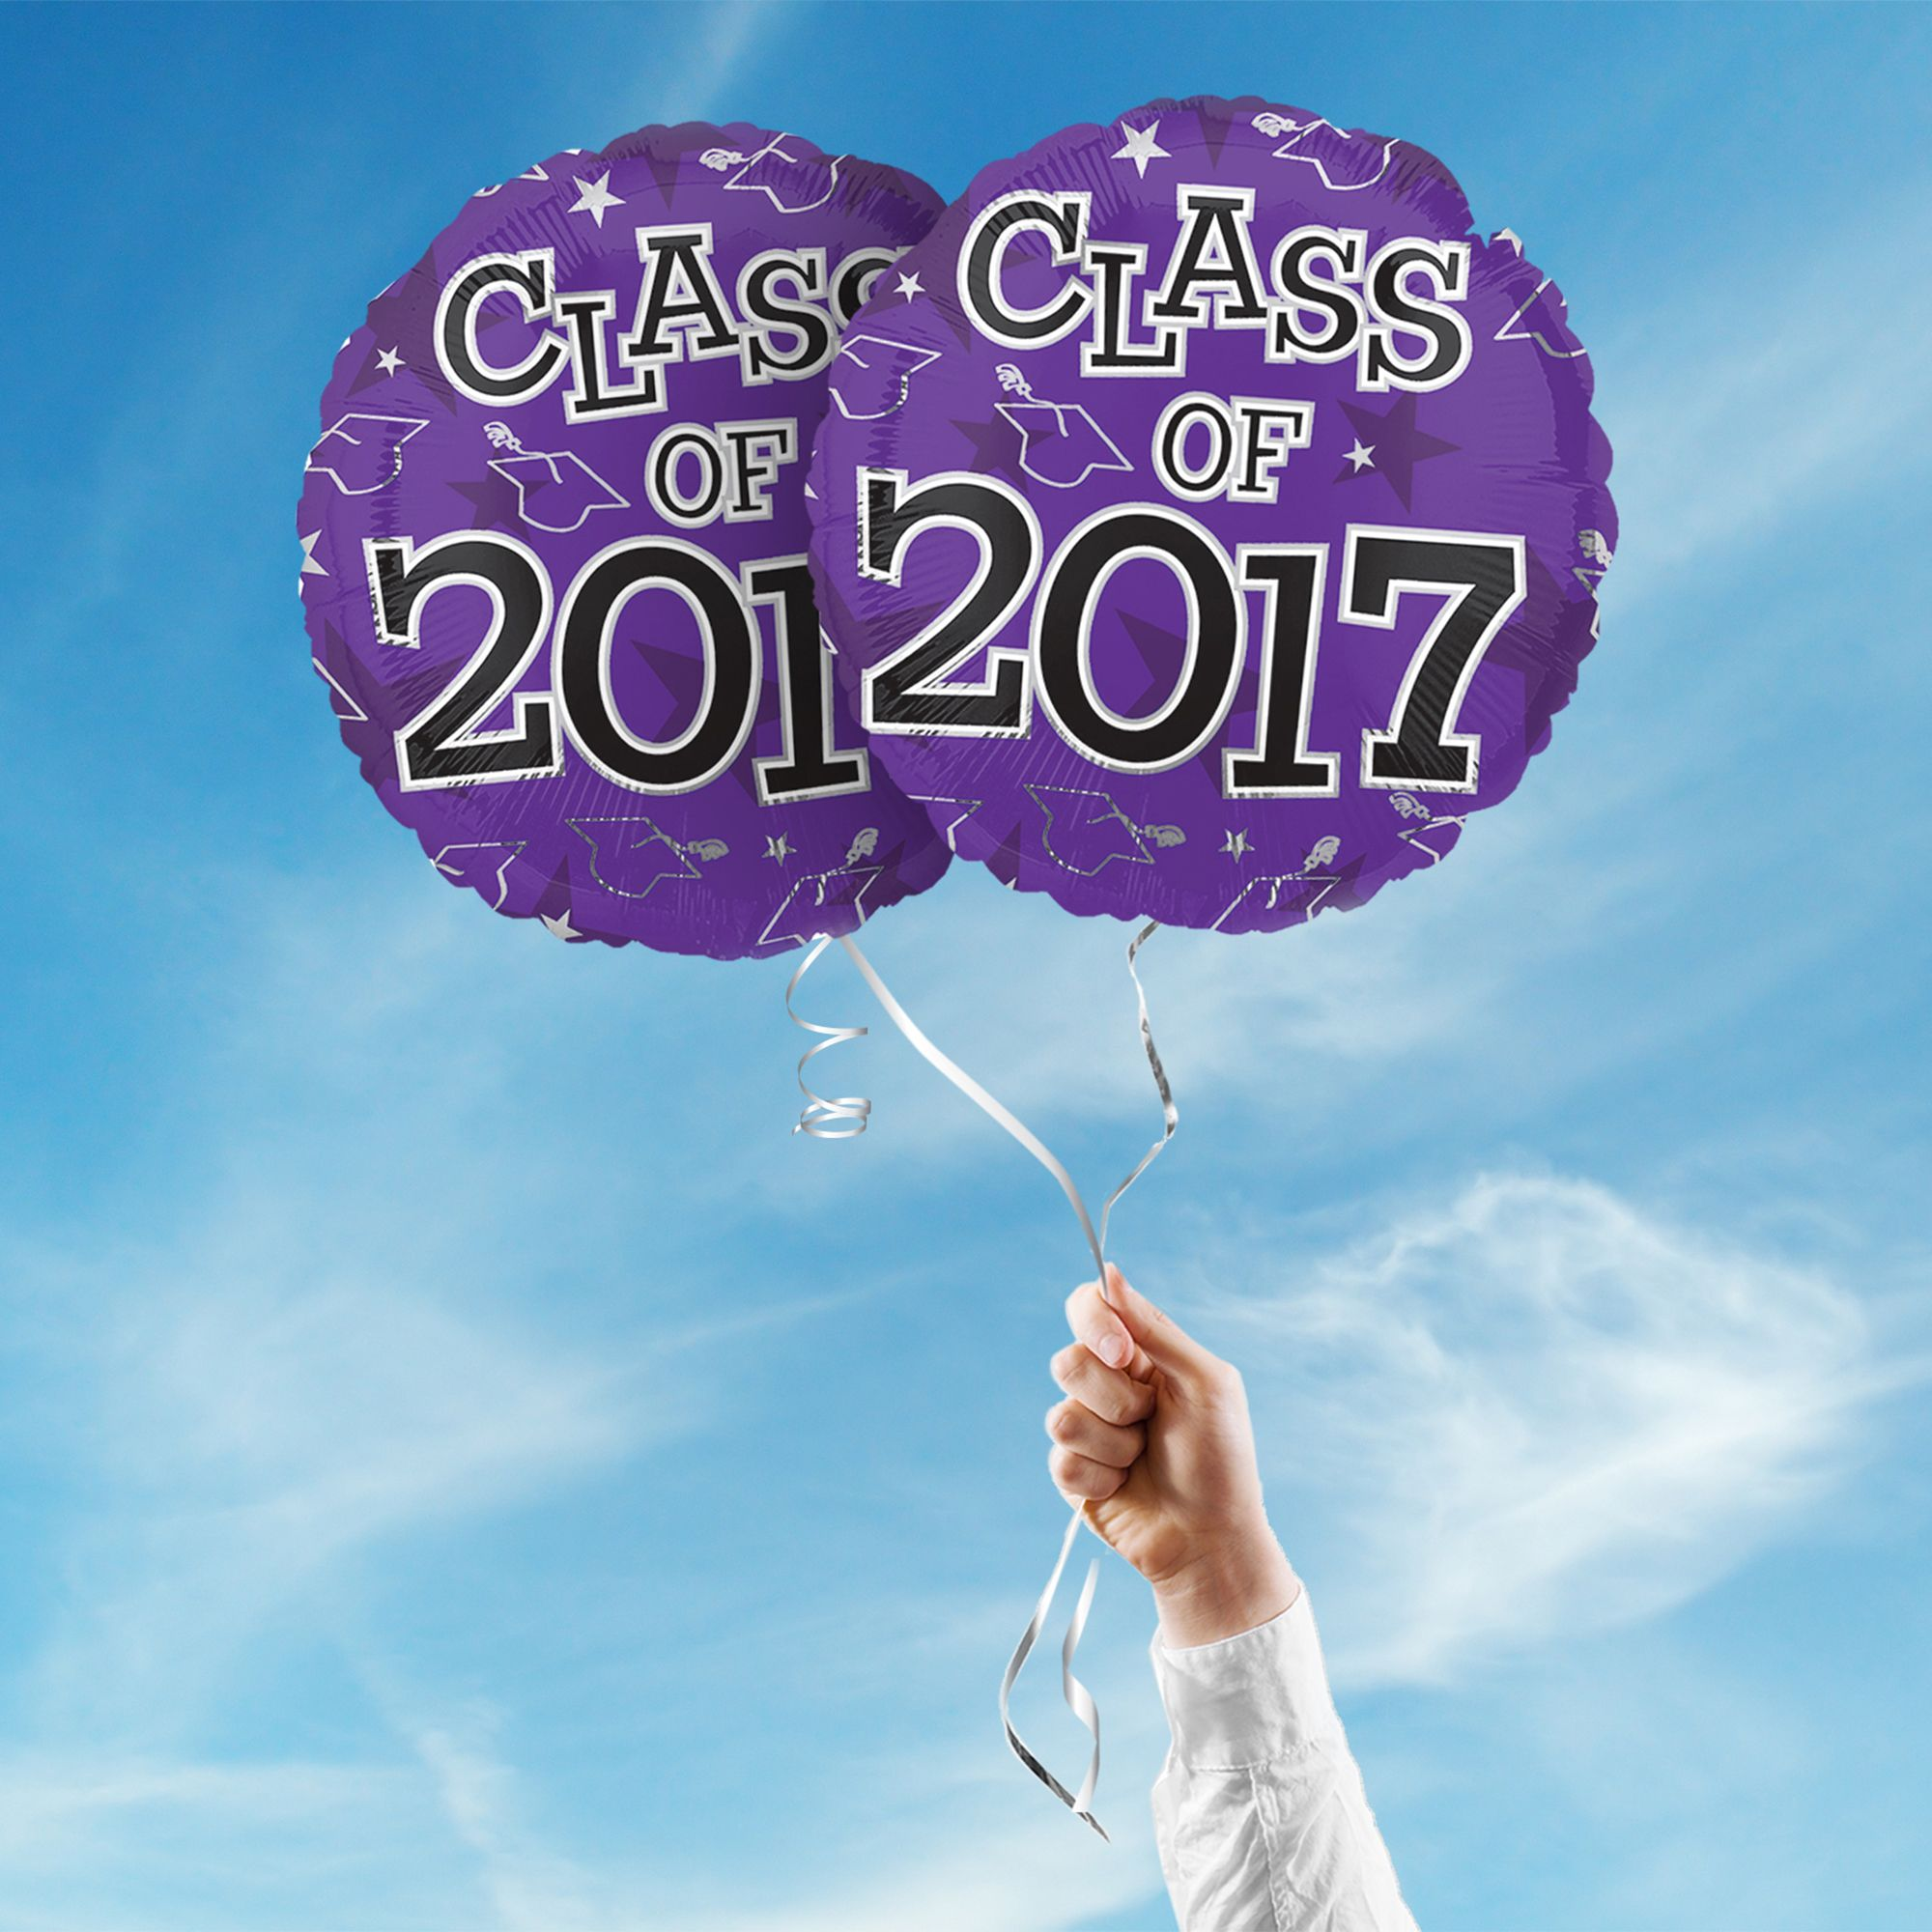 """Includes 2 Purple 17"""" round Class of 2017 graduation foil balloons. """"Class of 2017"""" is printed on both sides of the balloons. Use balloons for your graduation party centerpieces or balloon bouquets."""